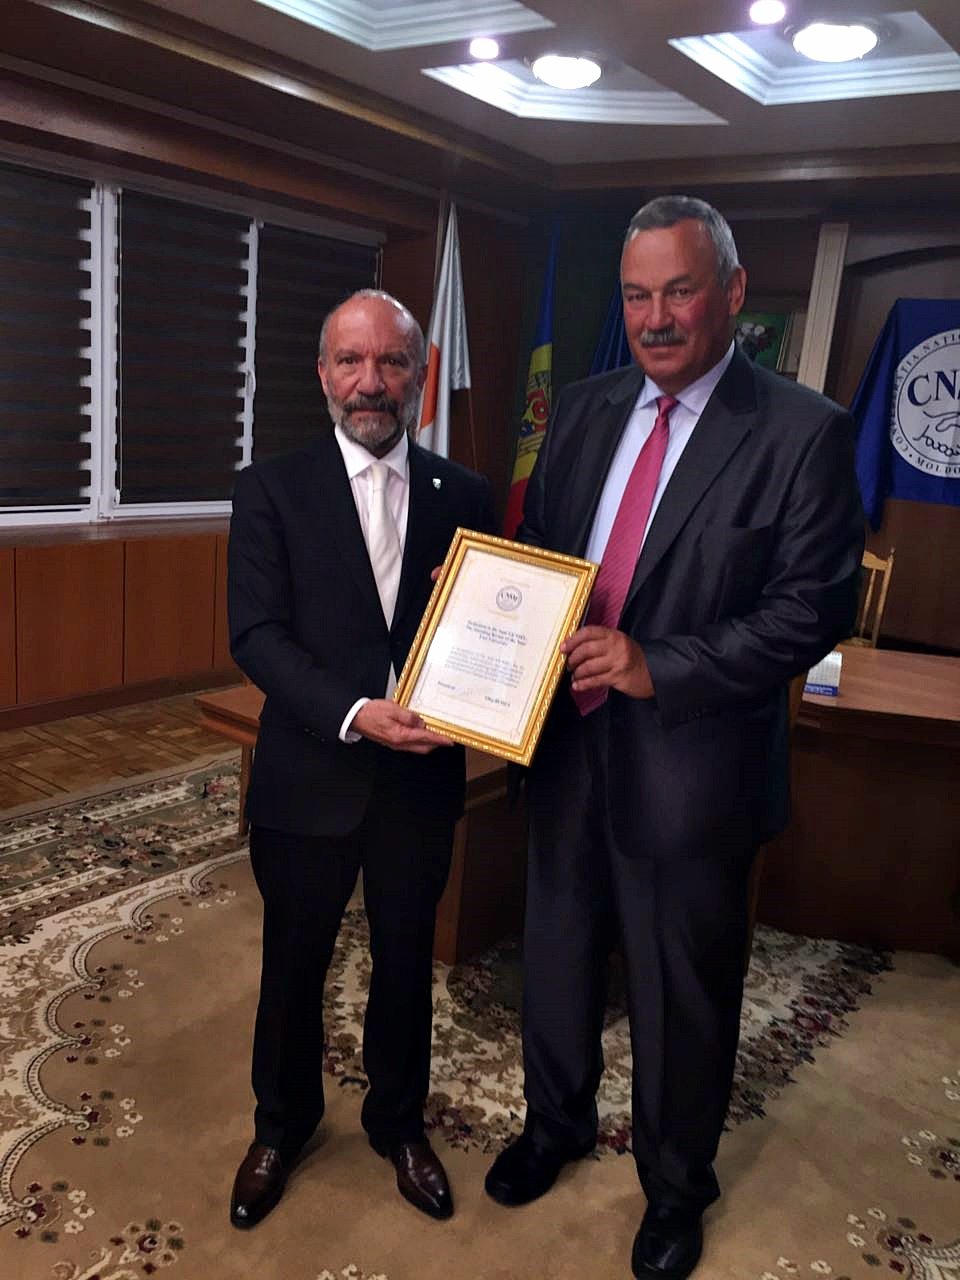 Oleg Budza, President of the National Confederation of Trade Unions of Moldova, presented the Certificate of High Honor to Dr. Suat İ. Günsel